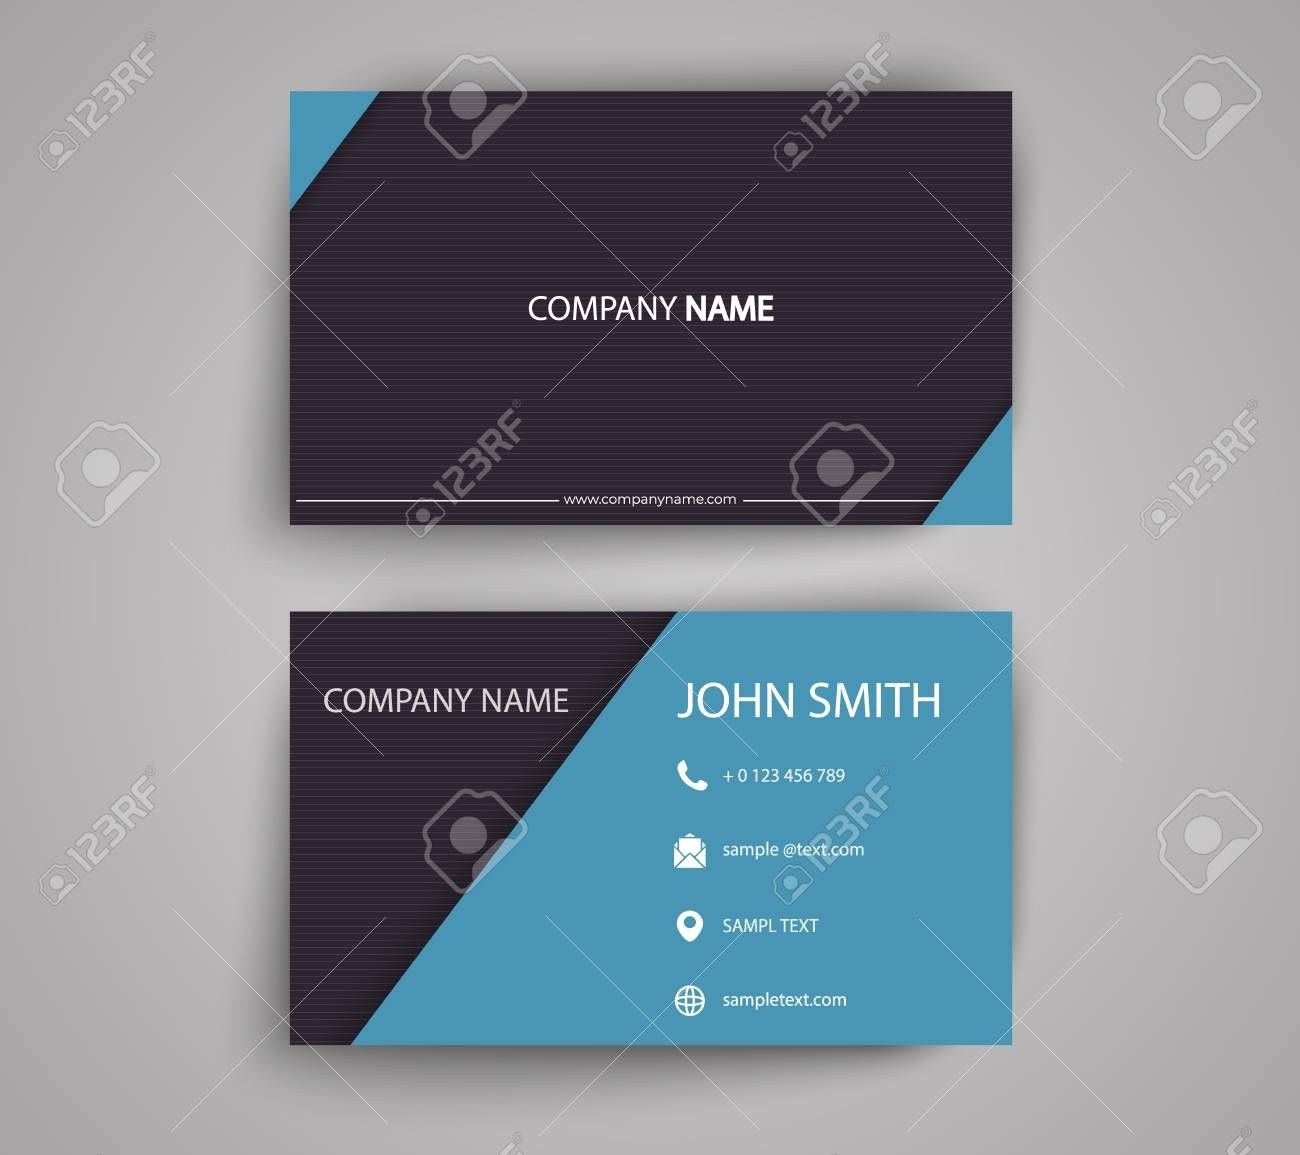 The Astonishing 012 Template Ideas Creative Double Sided Business Card With 2 Side In 2020 Business Card Template Word Double Sided Business Cards Business Card Design